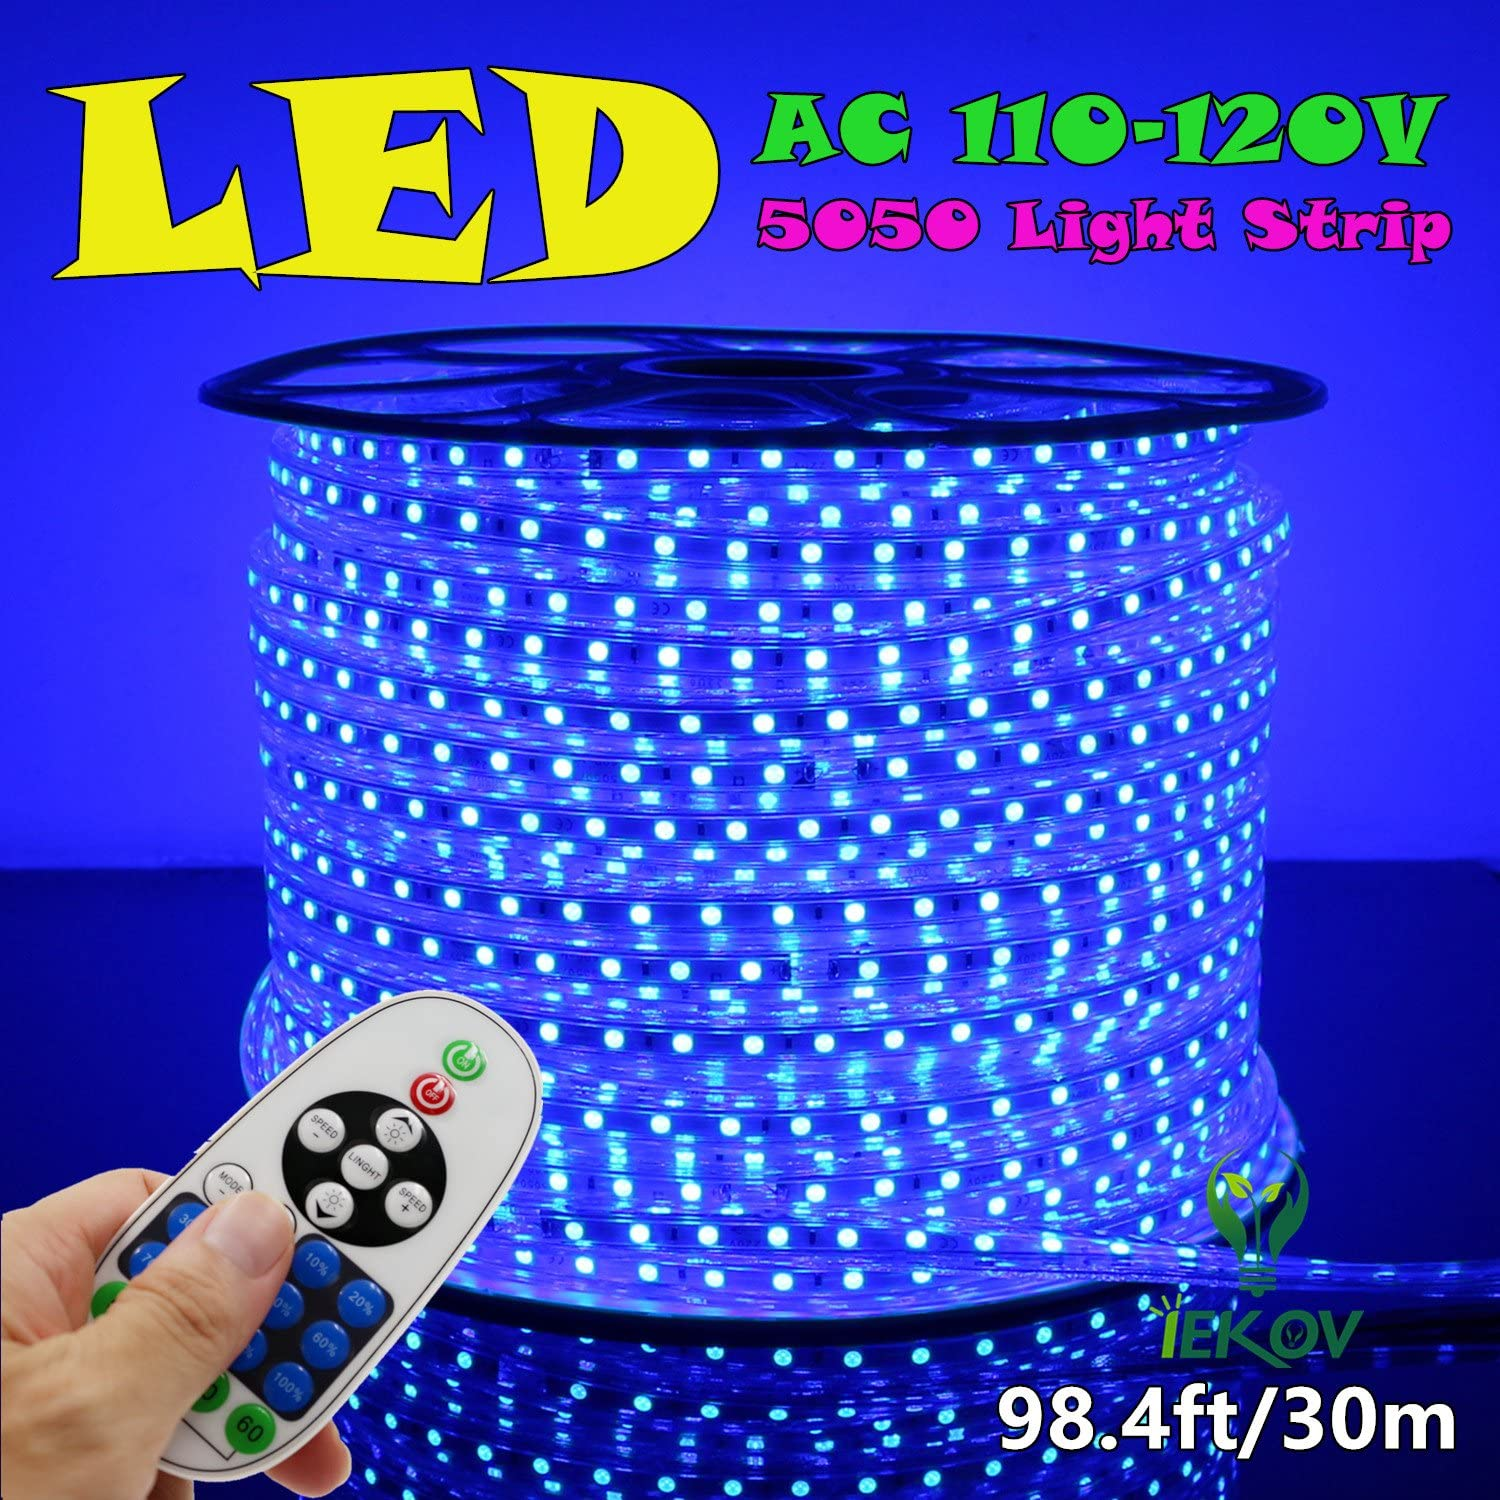 IEKOV AC 110-120V Flexible LED Strip Lights, 60 LEDs/M, Dimmable, Waterproof 5050 SMD LED Rope Light + Remote Controller for Christmas Home Decoration (98.4ft/30m, Blue)